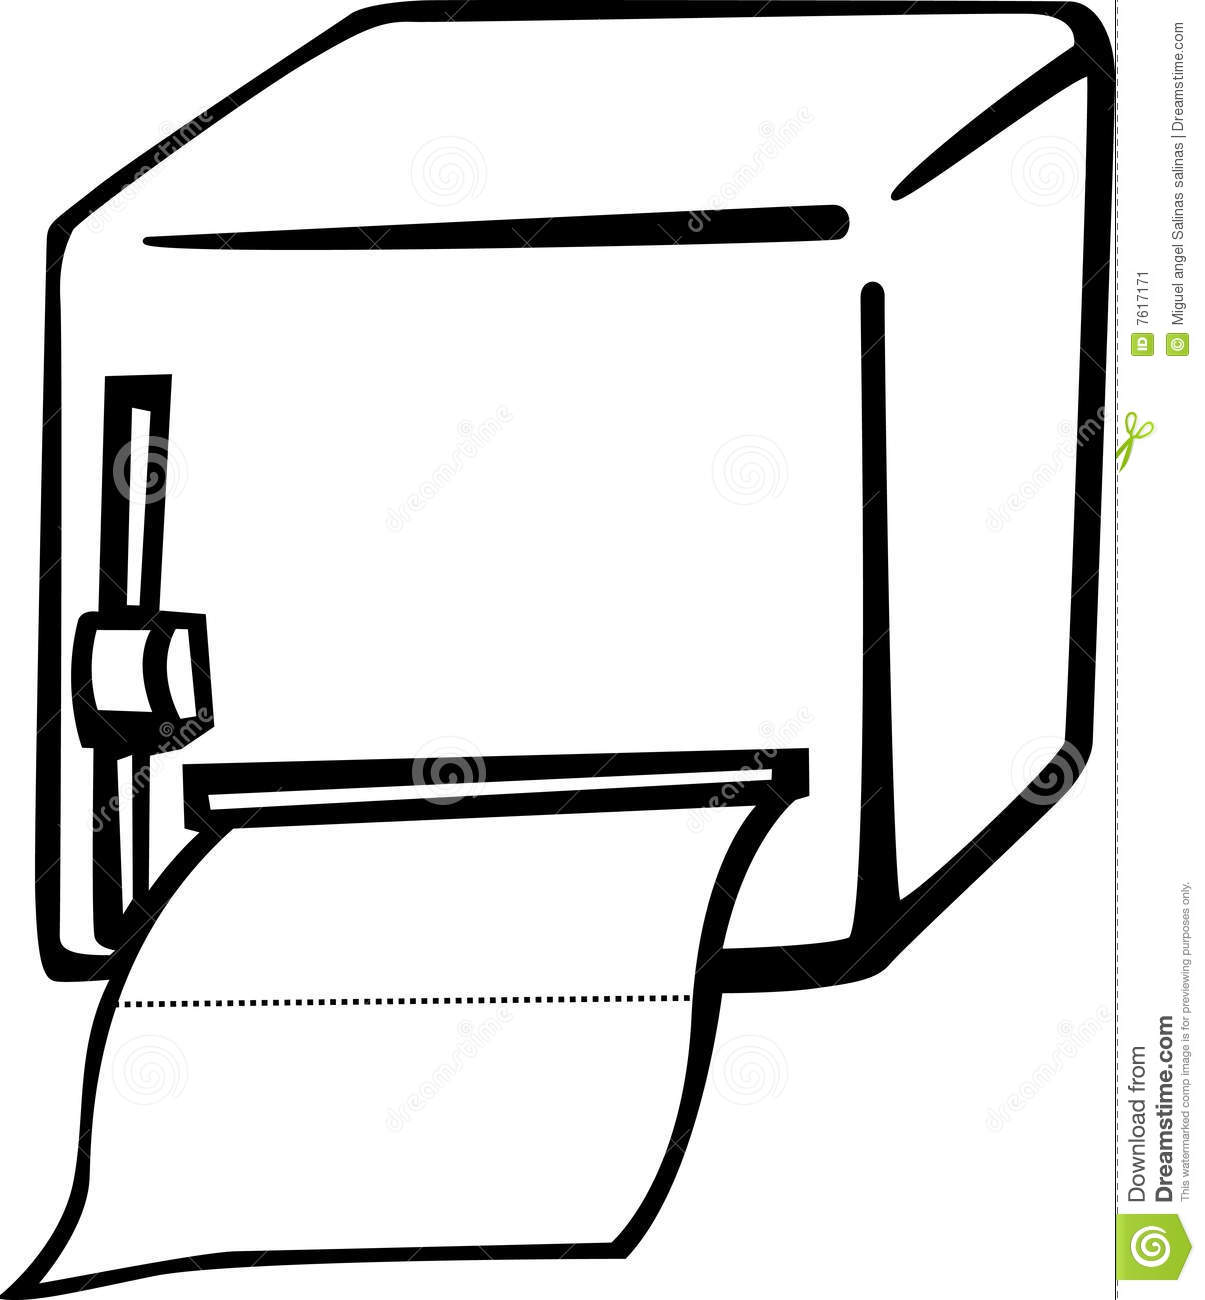 Bathroom Paper Dispenser Vector Illustration Stock Vector